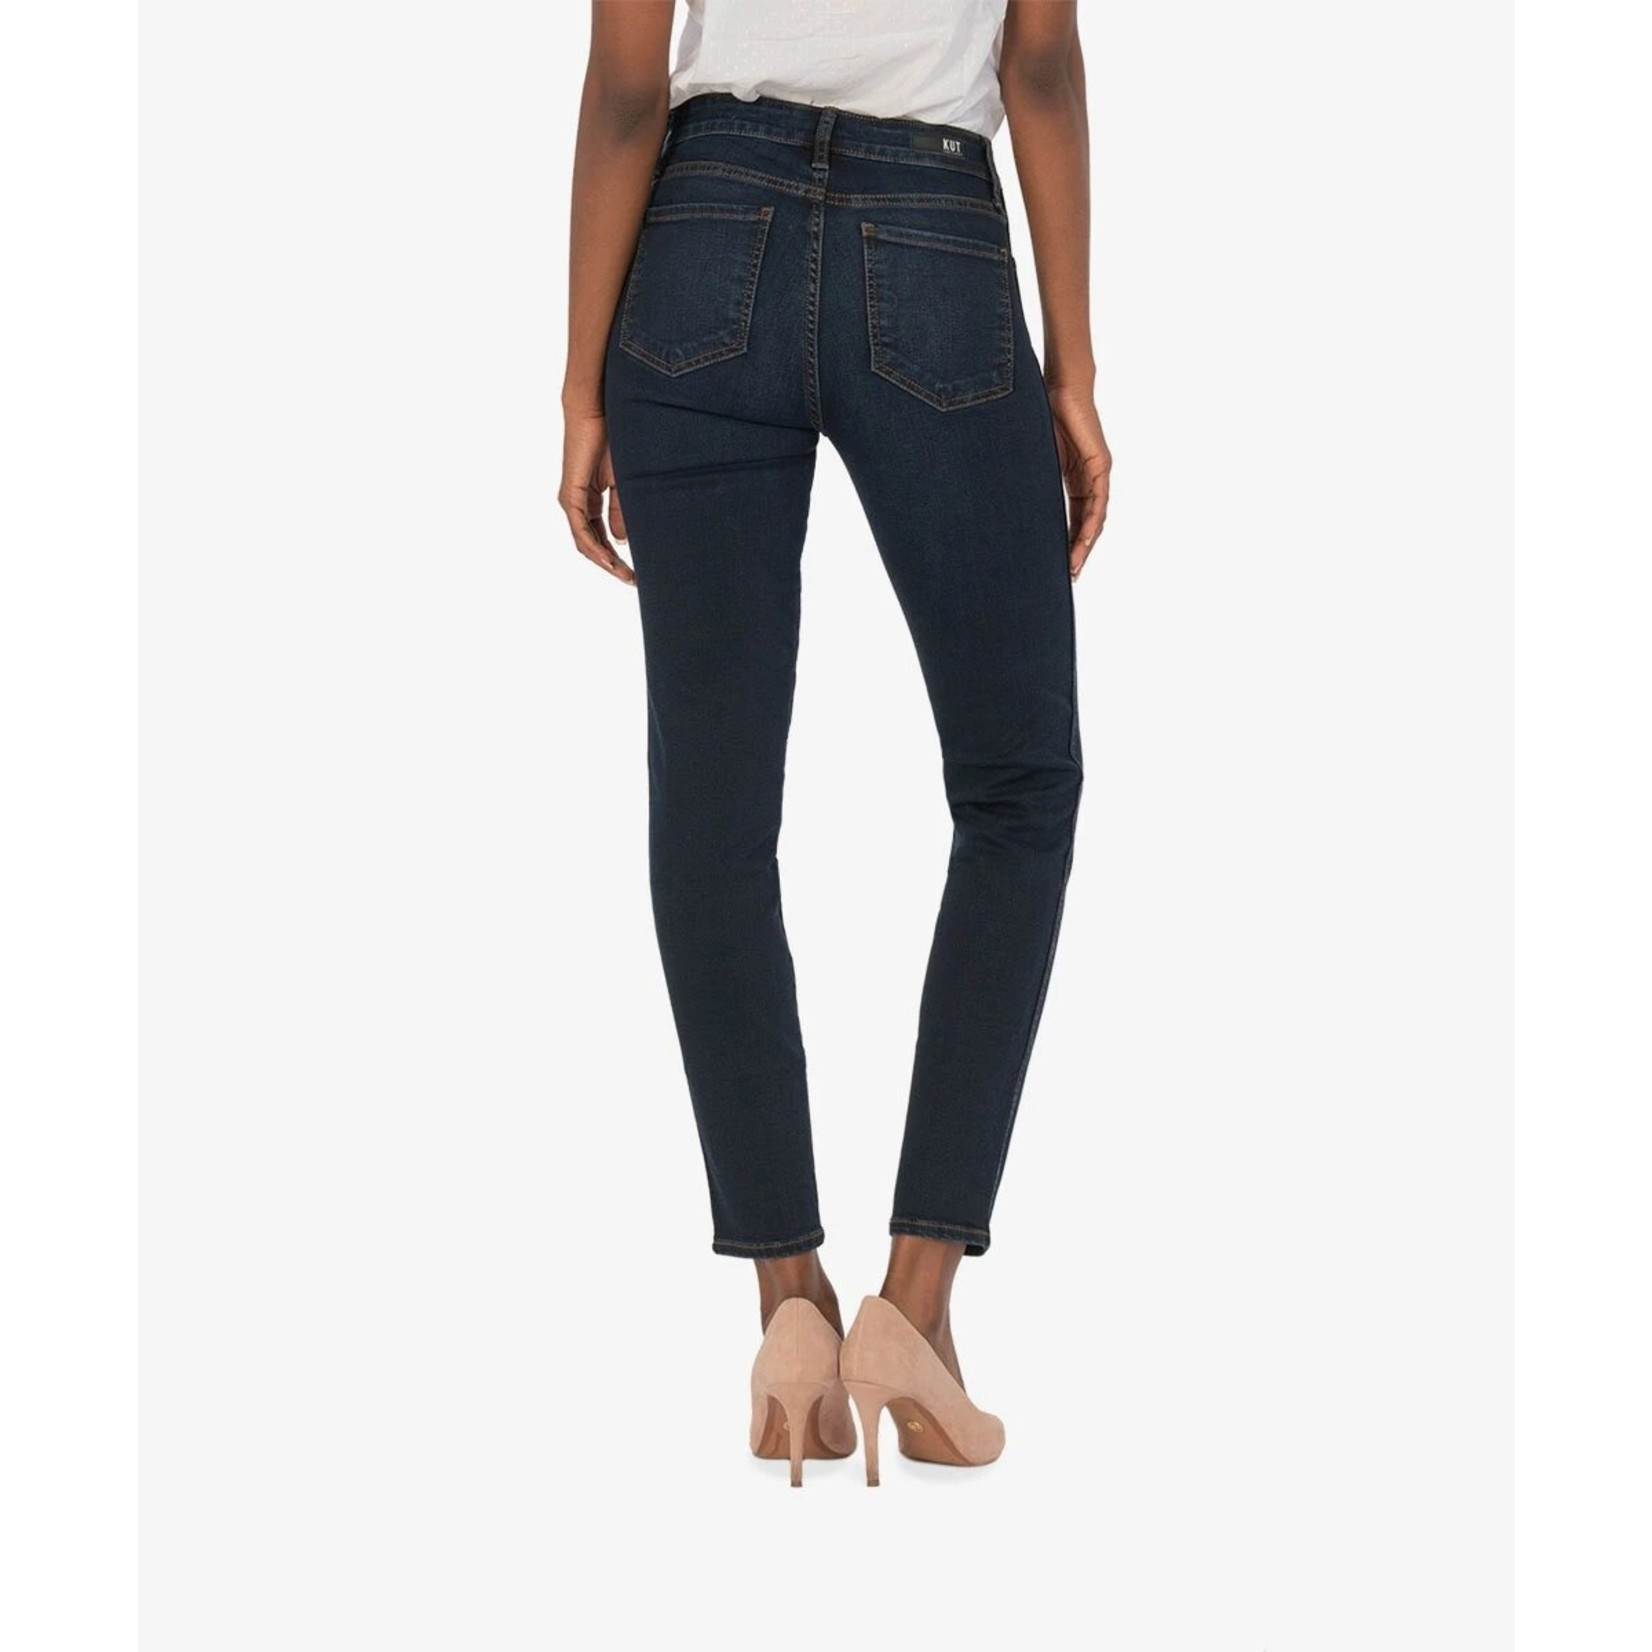 Kut From The Kloth Diana High Rise Skinny